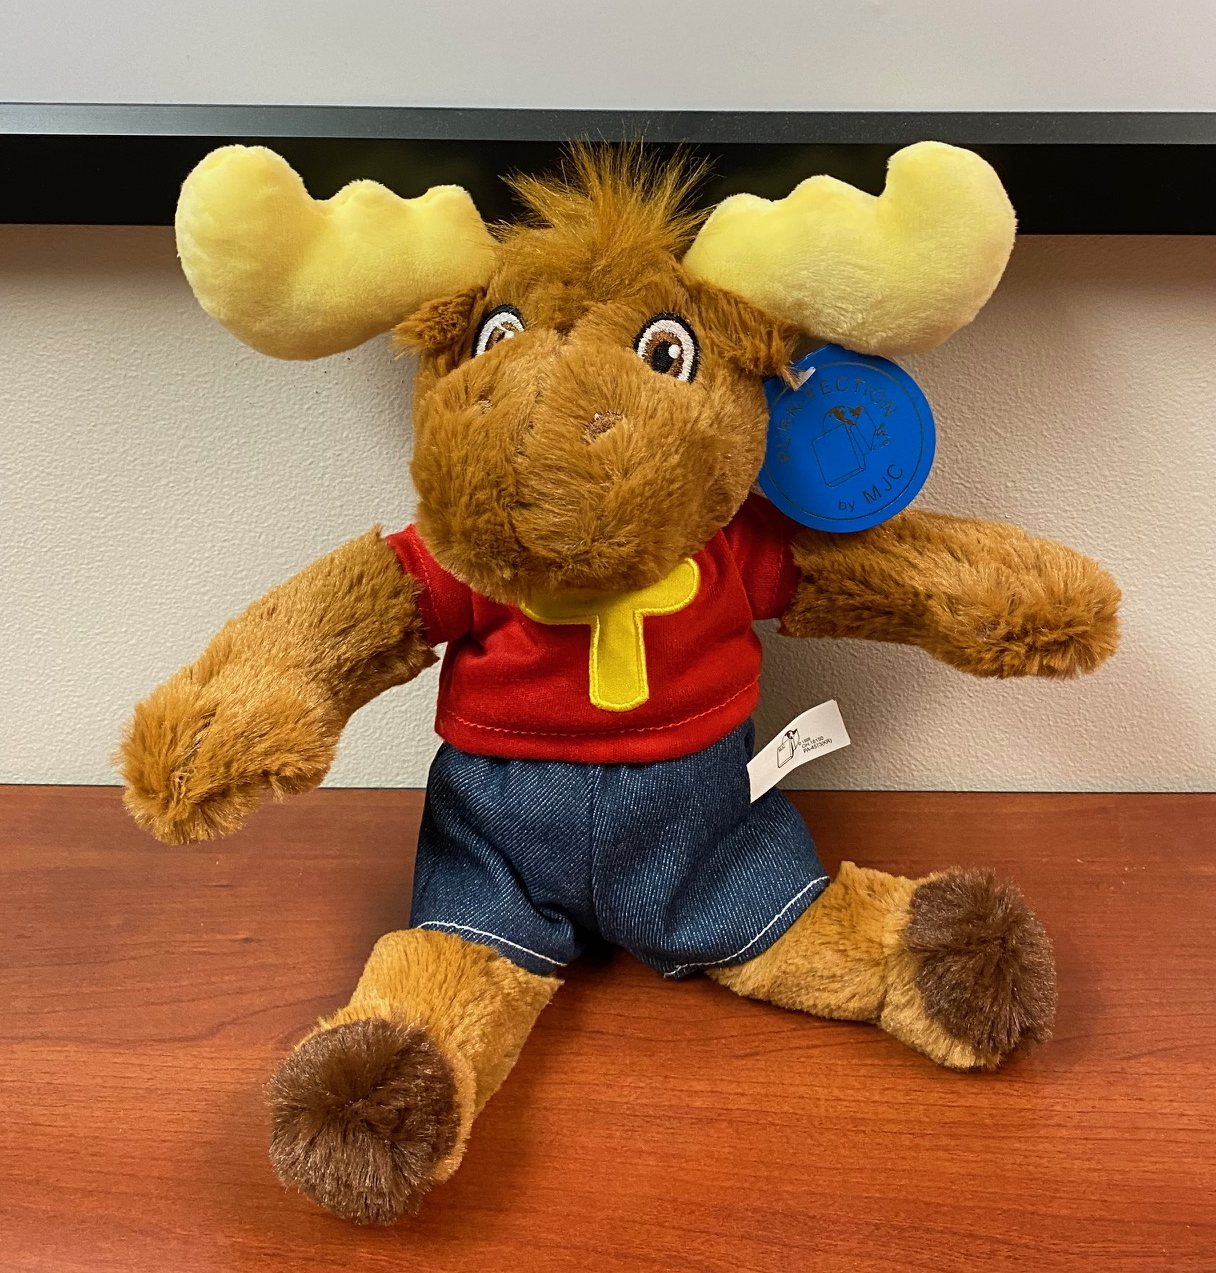 A picture of the Tommy Moose plush animal.